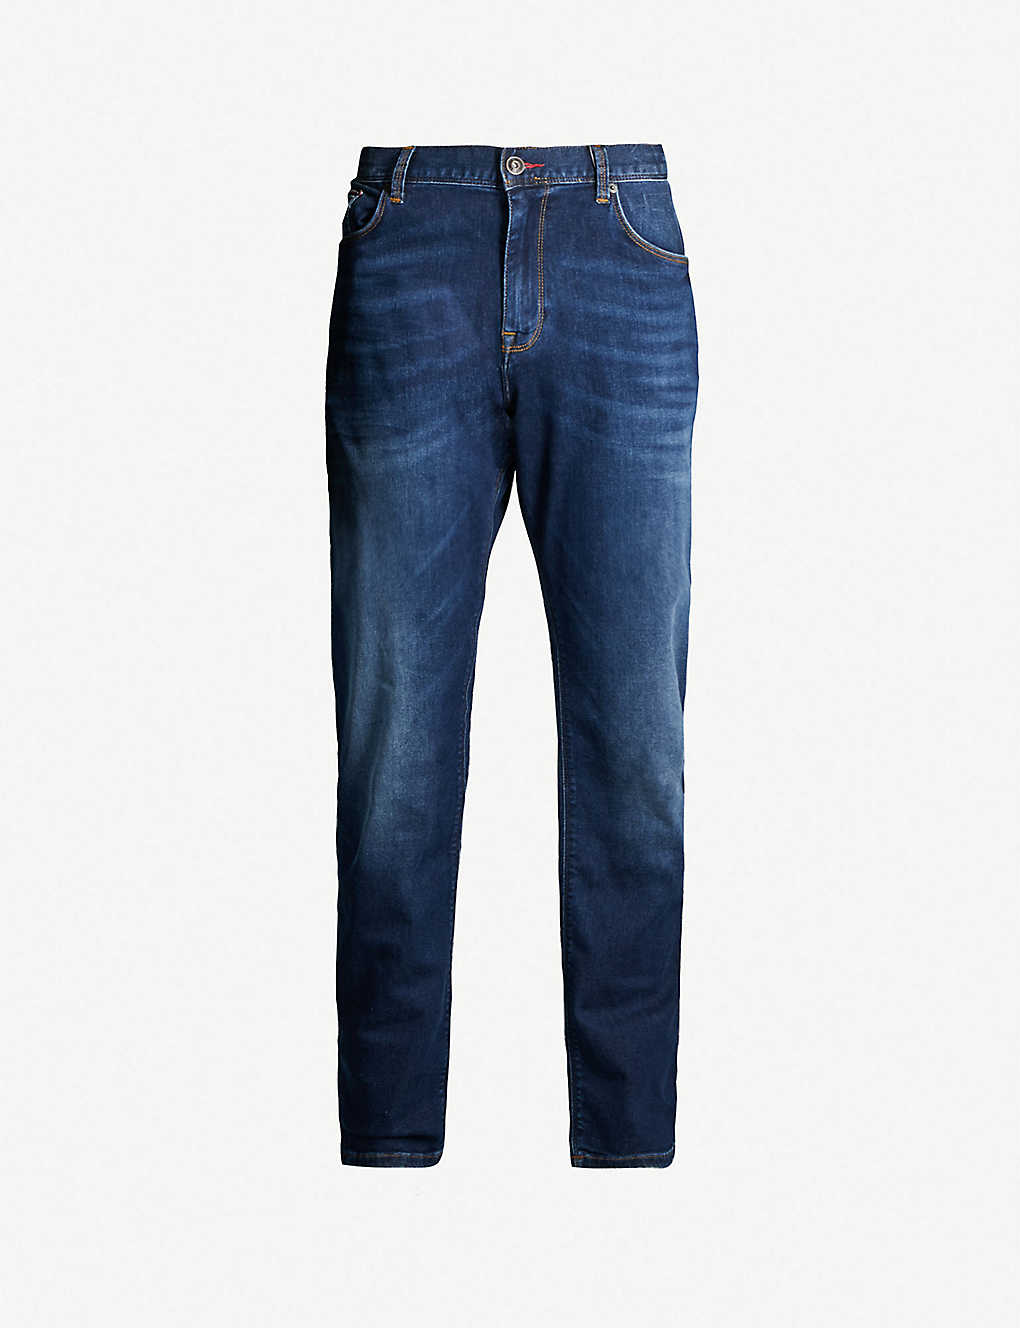 1858b3d9 TOMMY HILFIGER - Bleecker slim-fit jeans | Selfridges.com